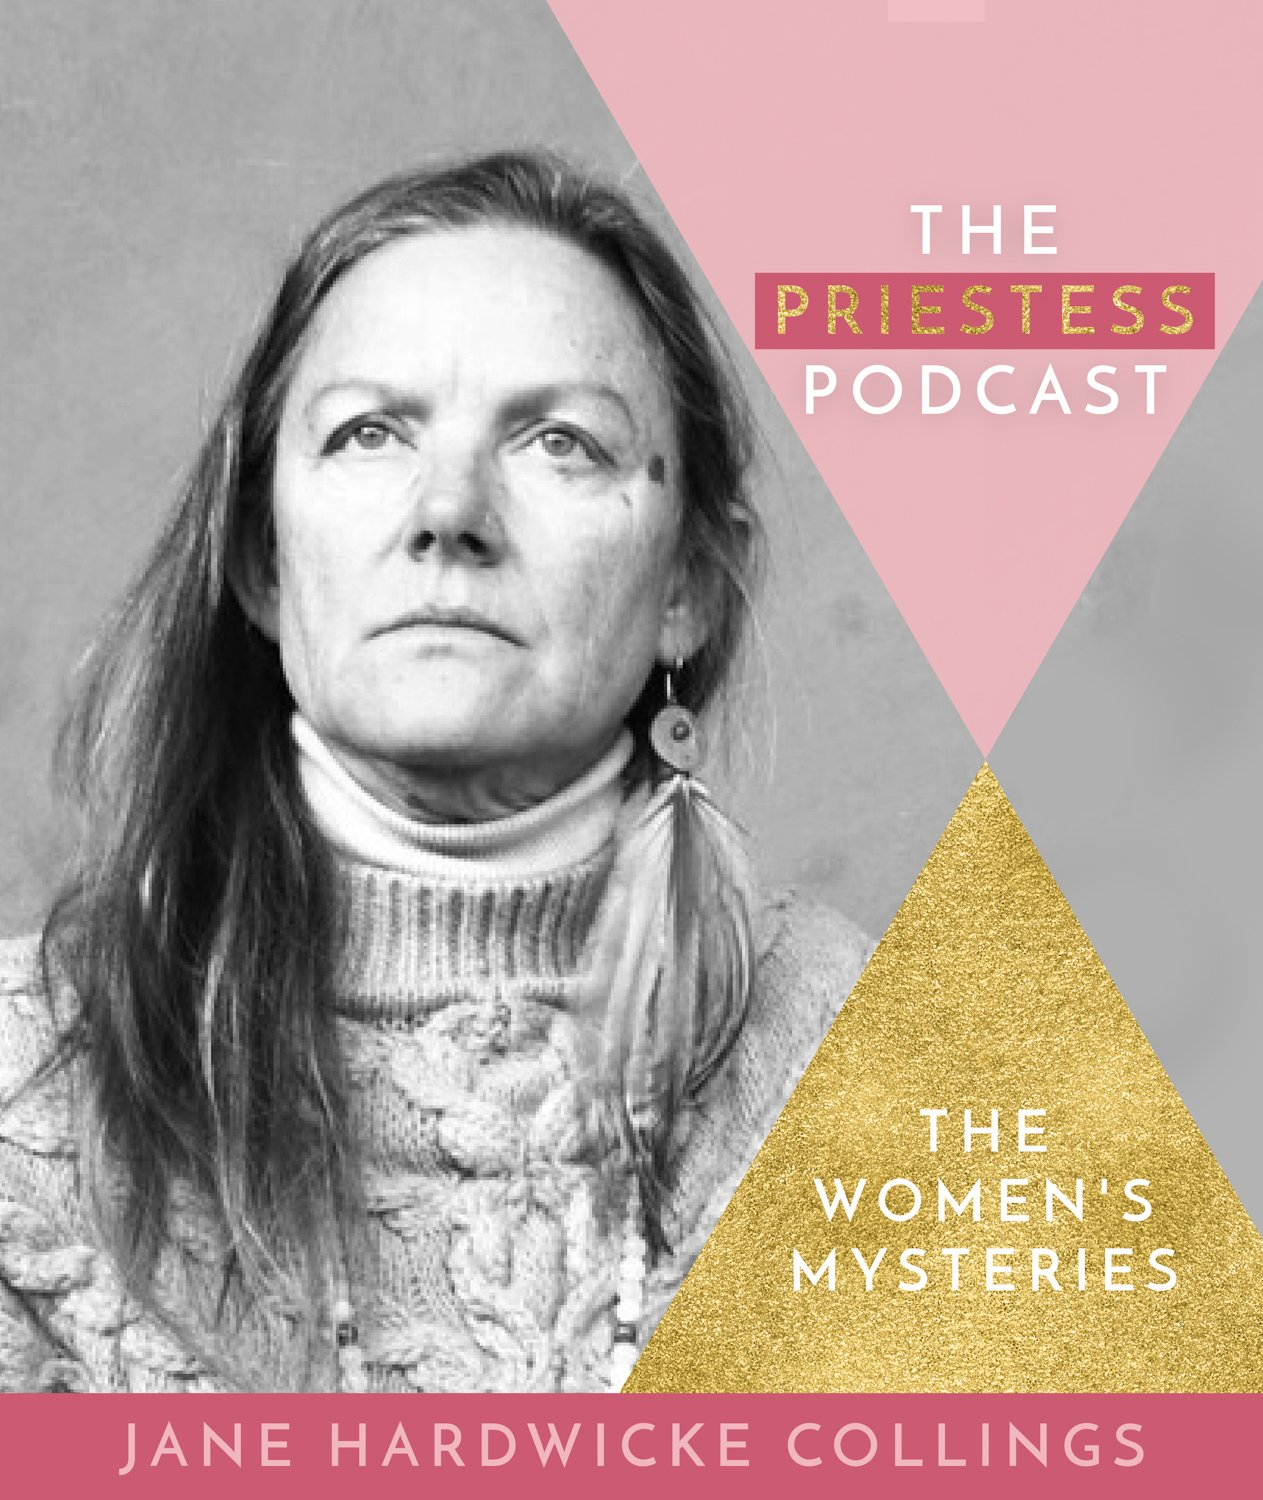 Jane Hardwicke Collings on The Women's Mysteries